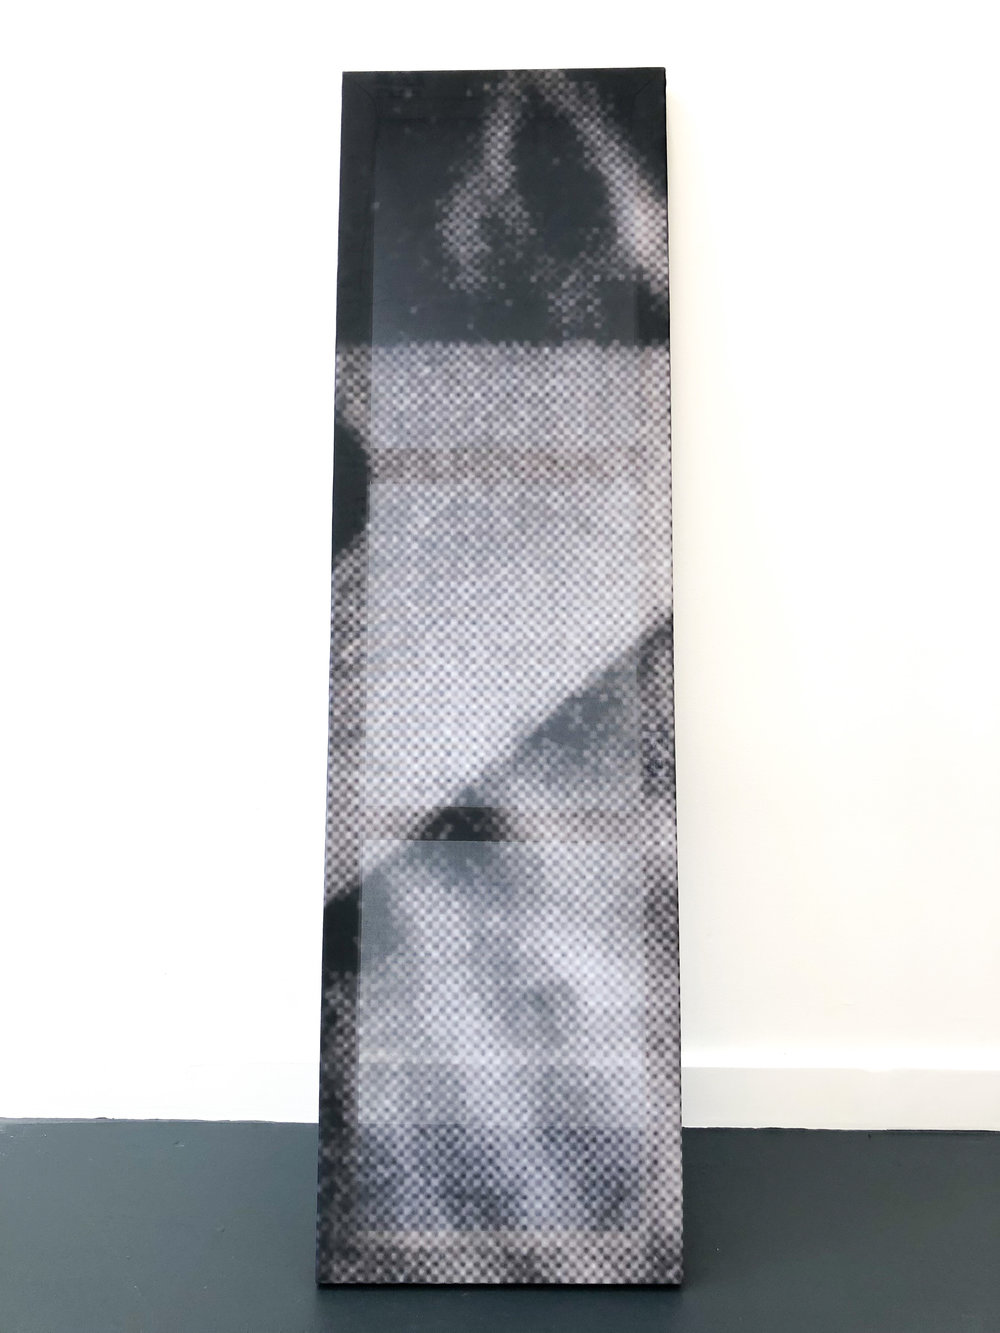 Wandering among objects (ripple tank) I , 2018, Pair of stretched digital prints on fabric, 53.5 x 15 inches